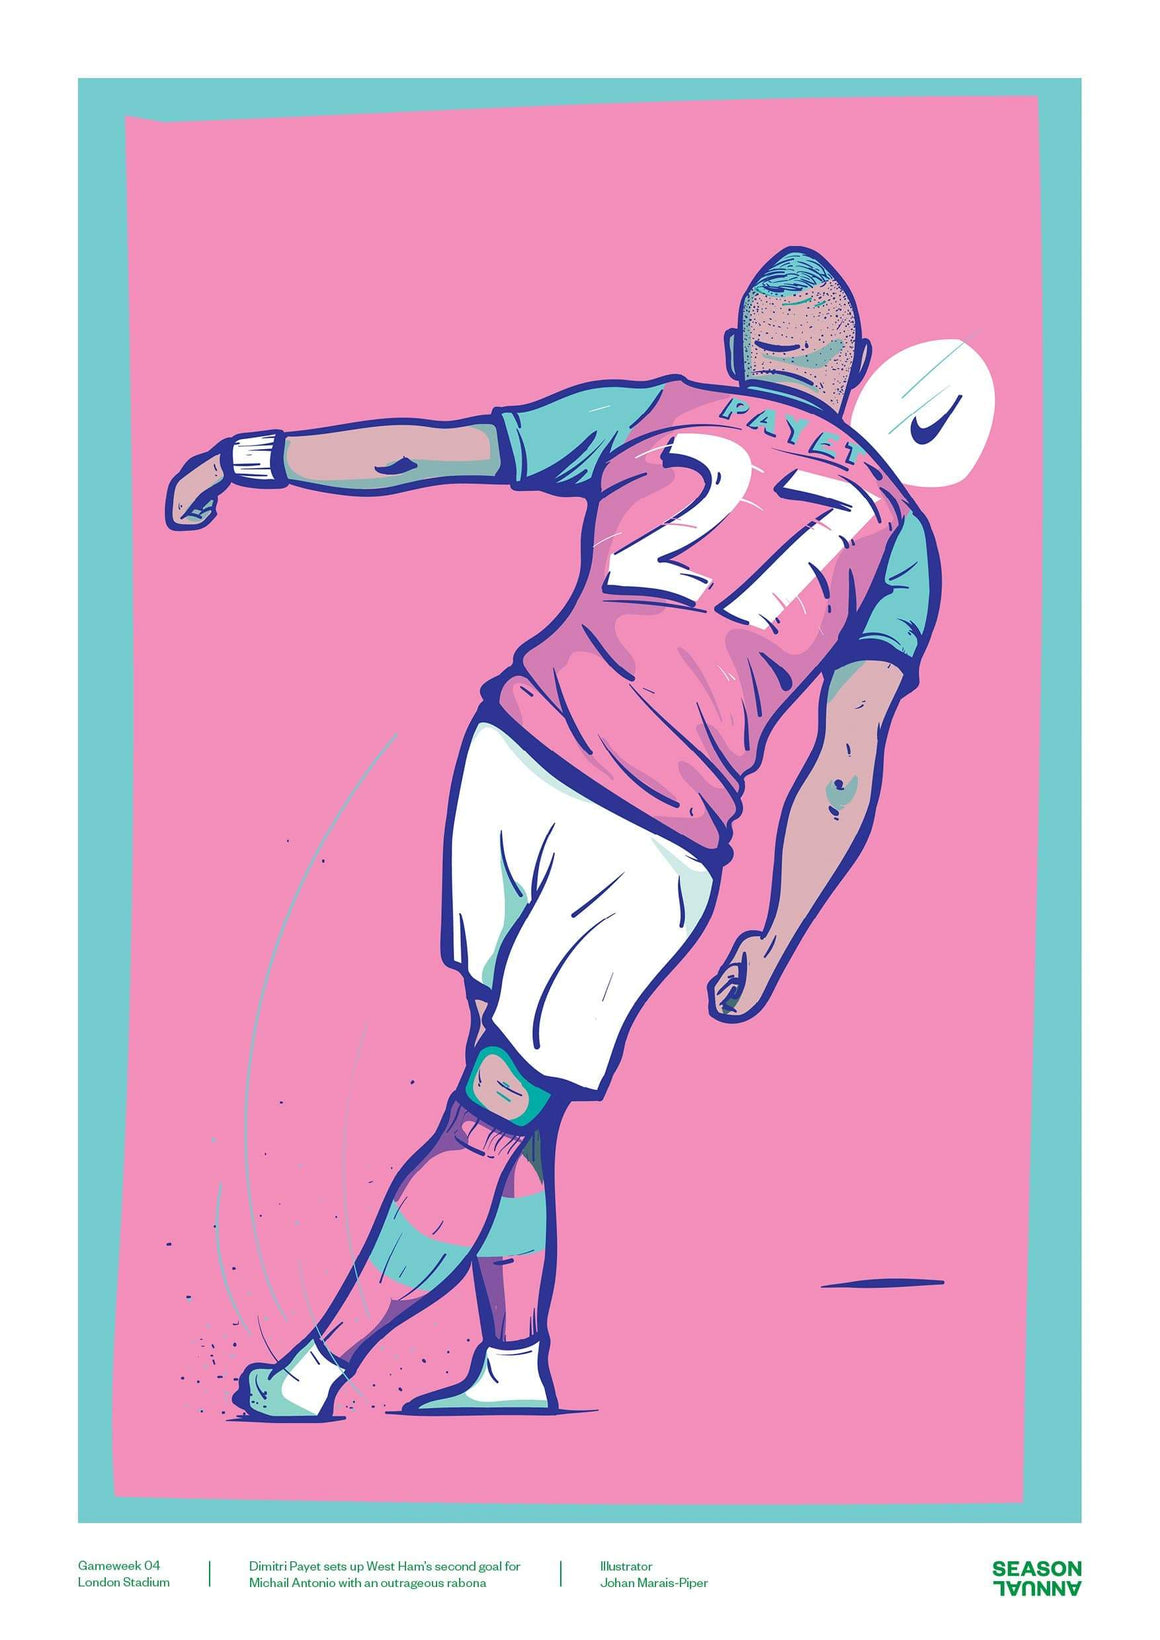 Season Annual Dimitri Payet West Ham United Poster: MOTW Gameweek 04